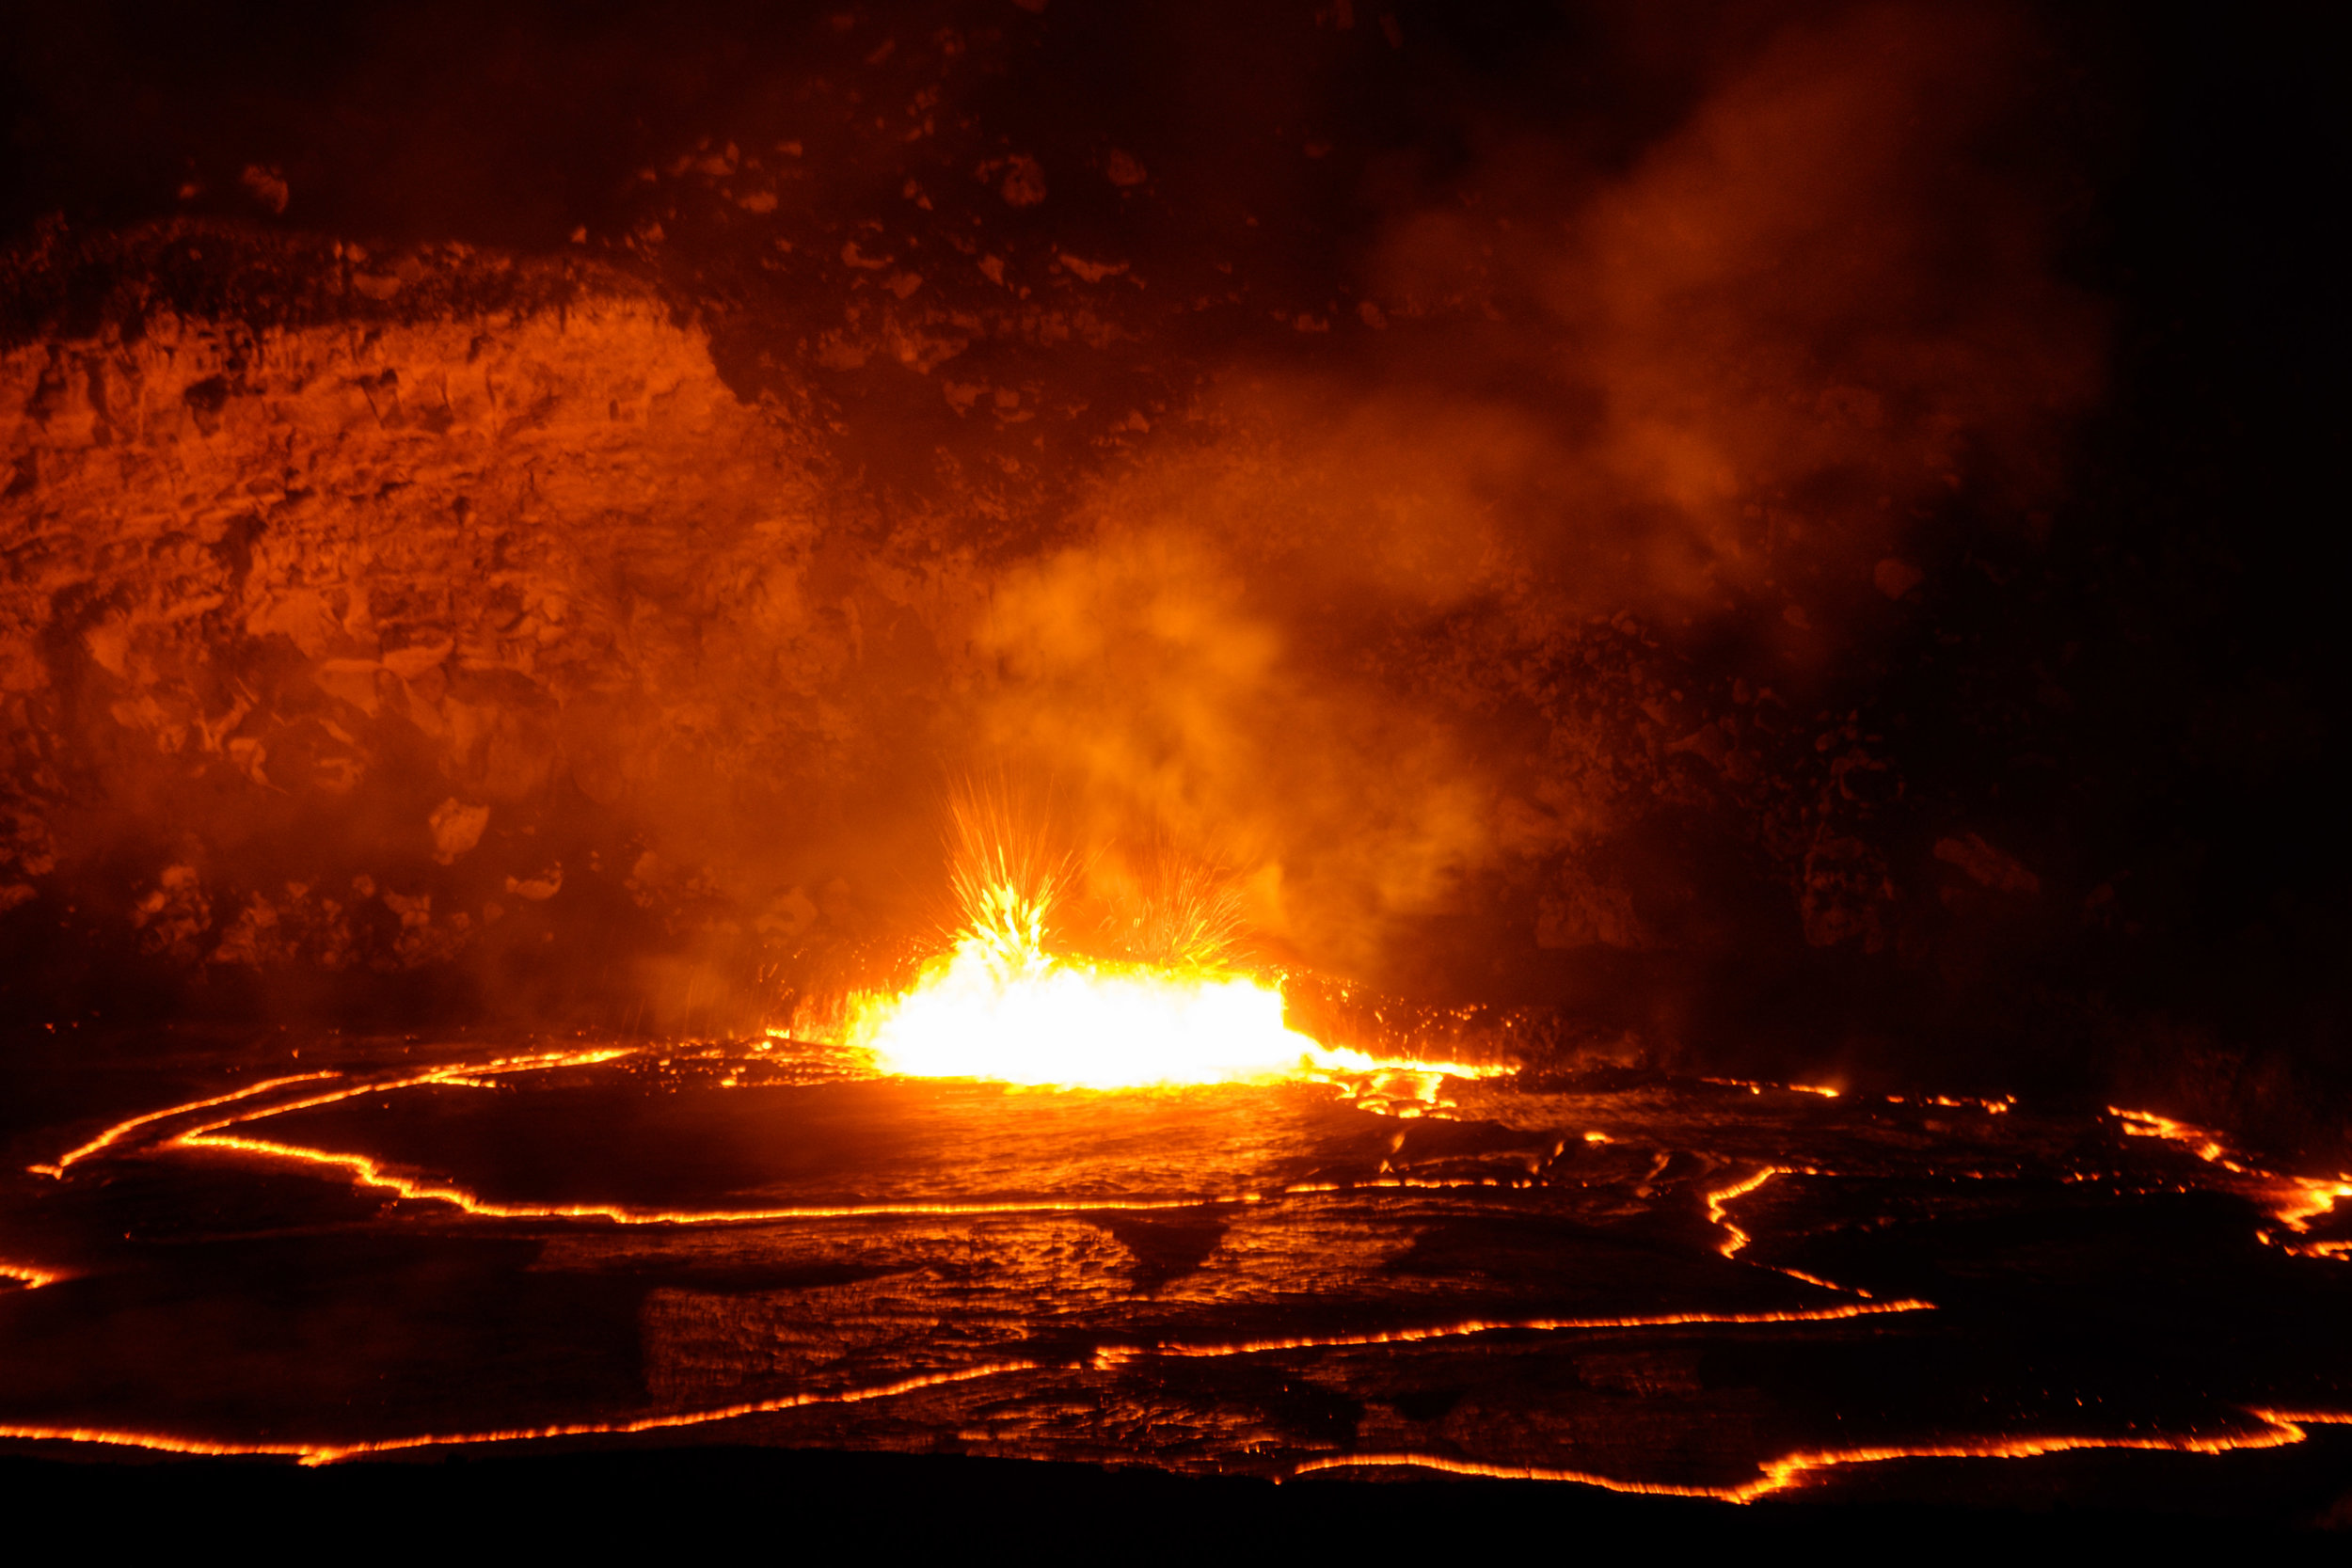 Halema'uma'u,Kīlauea's main crater   at night as seen from the observation deck at the Jaggar Museum.